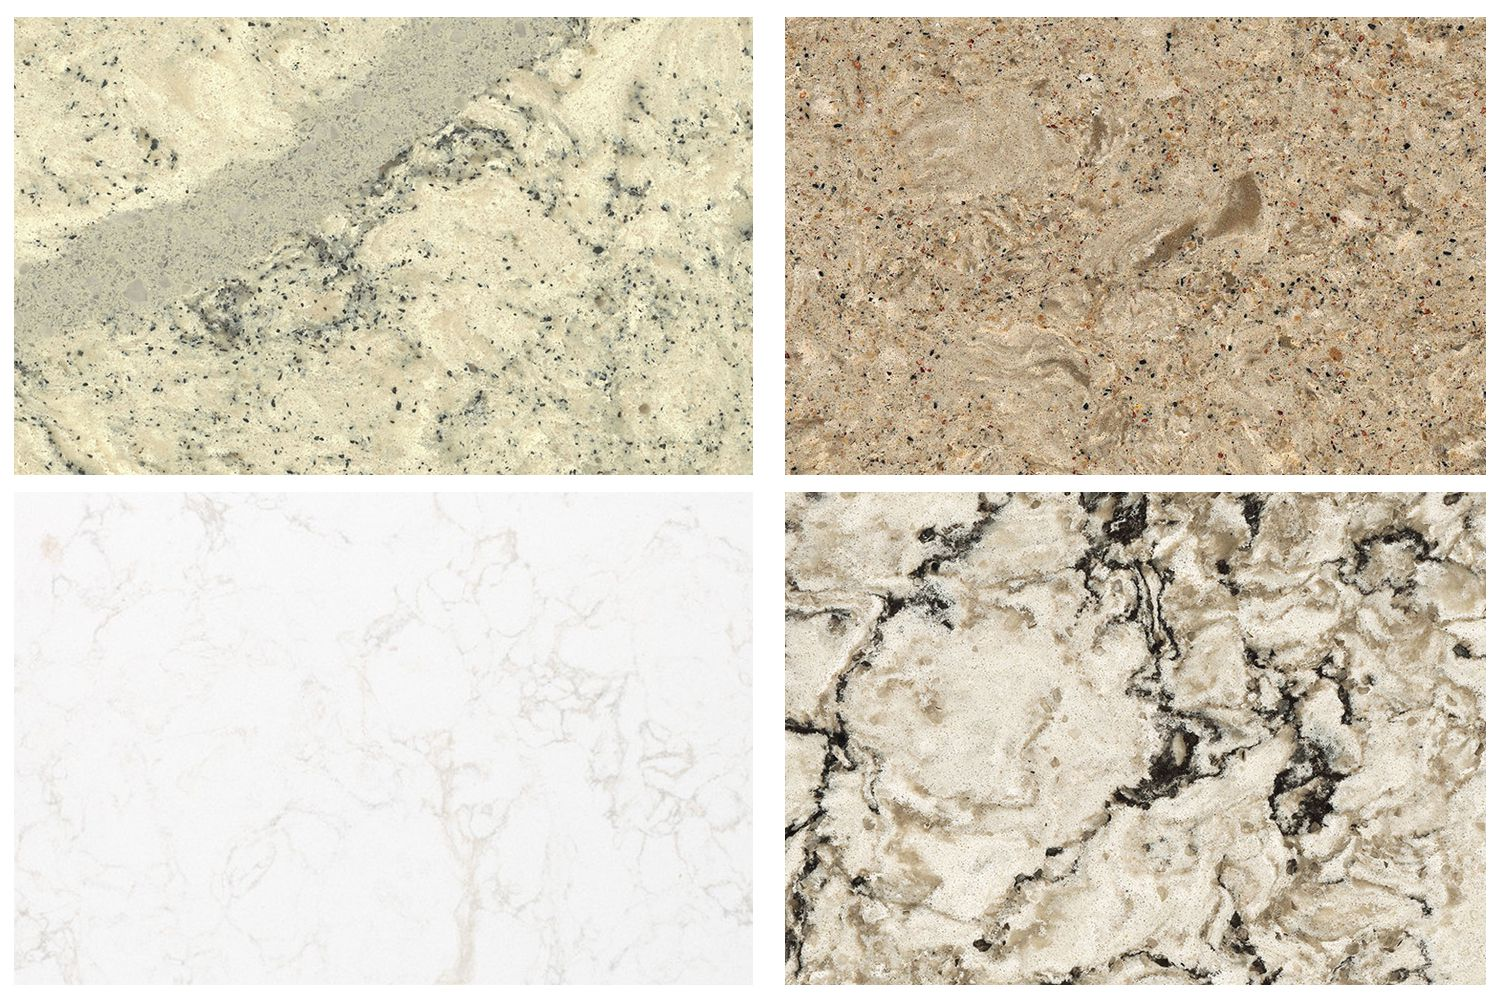 Cambria quartz with veins traditional to transitional nvjuhfo Choice Image